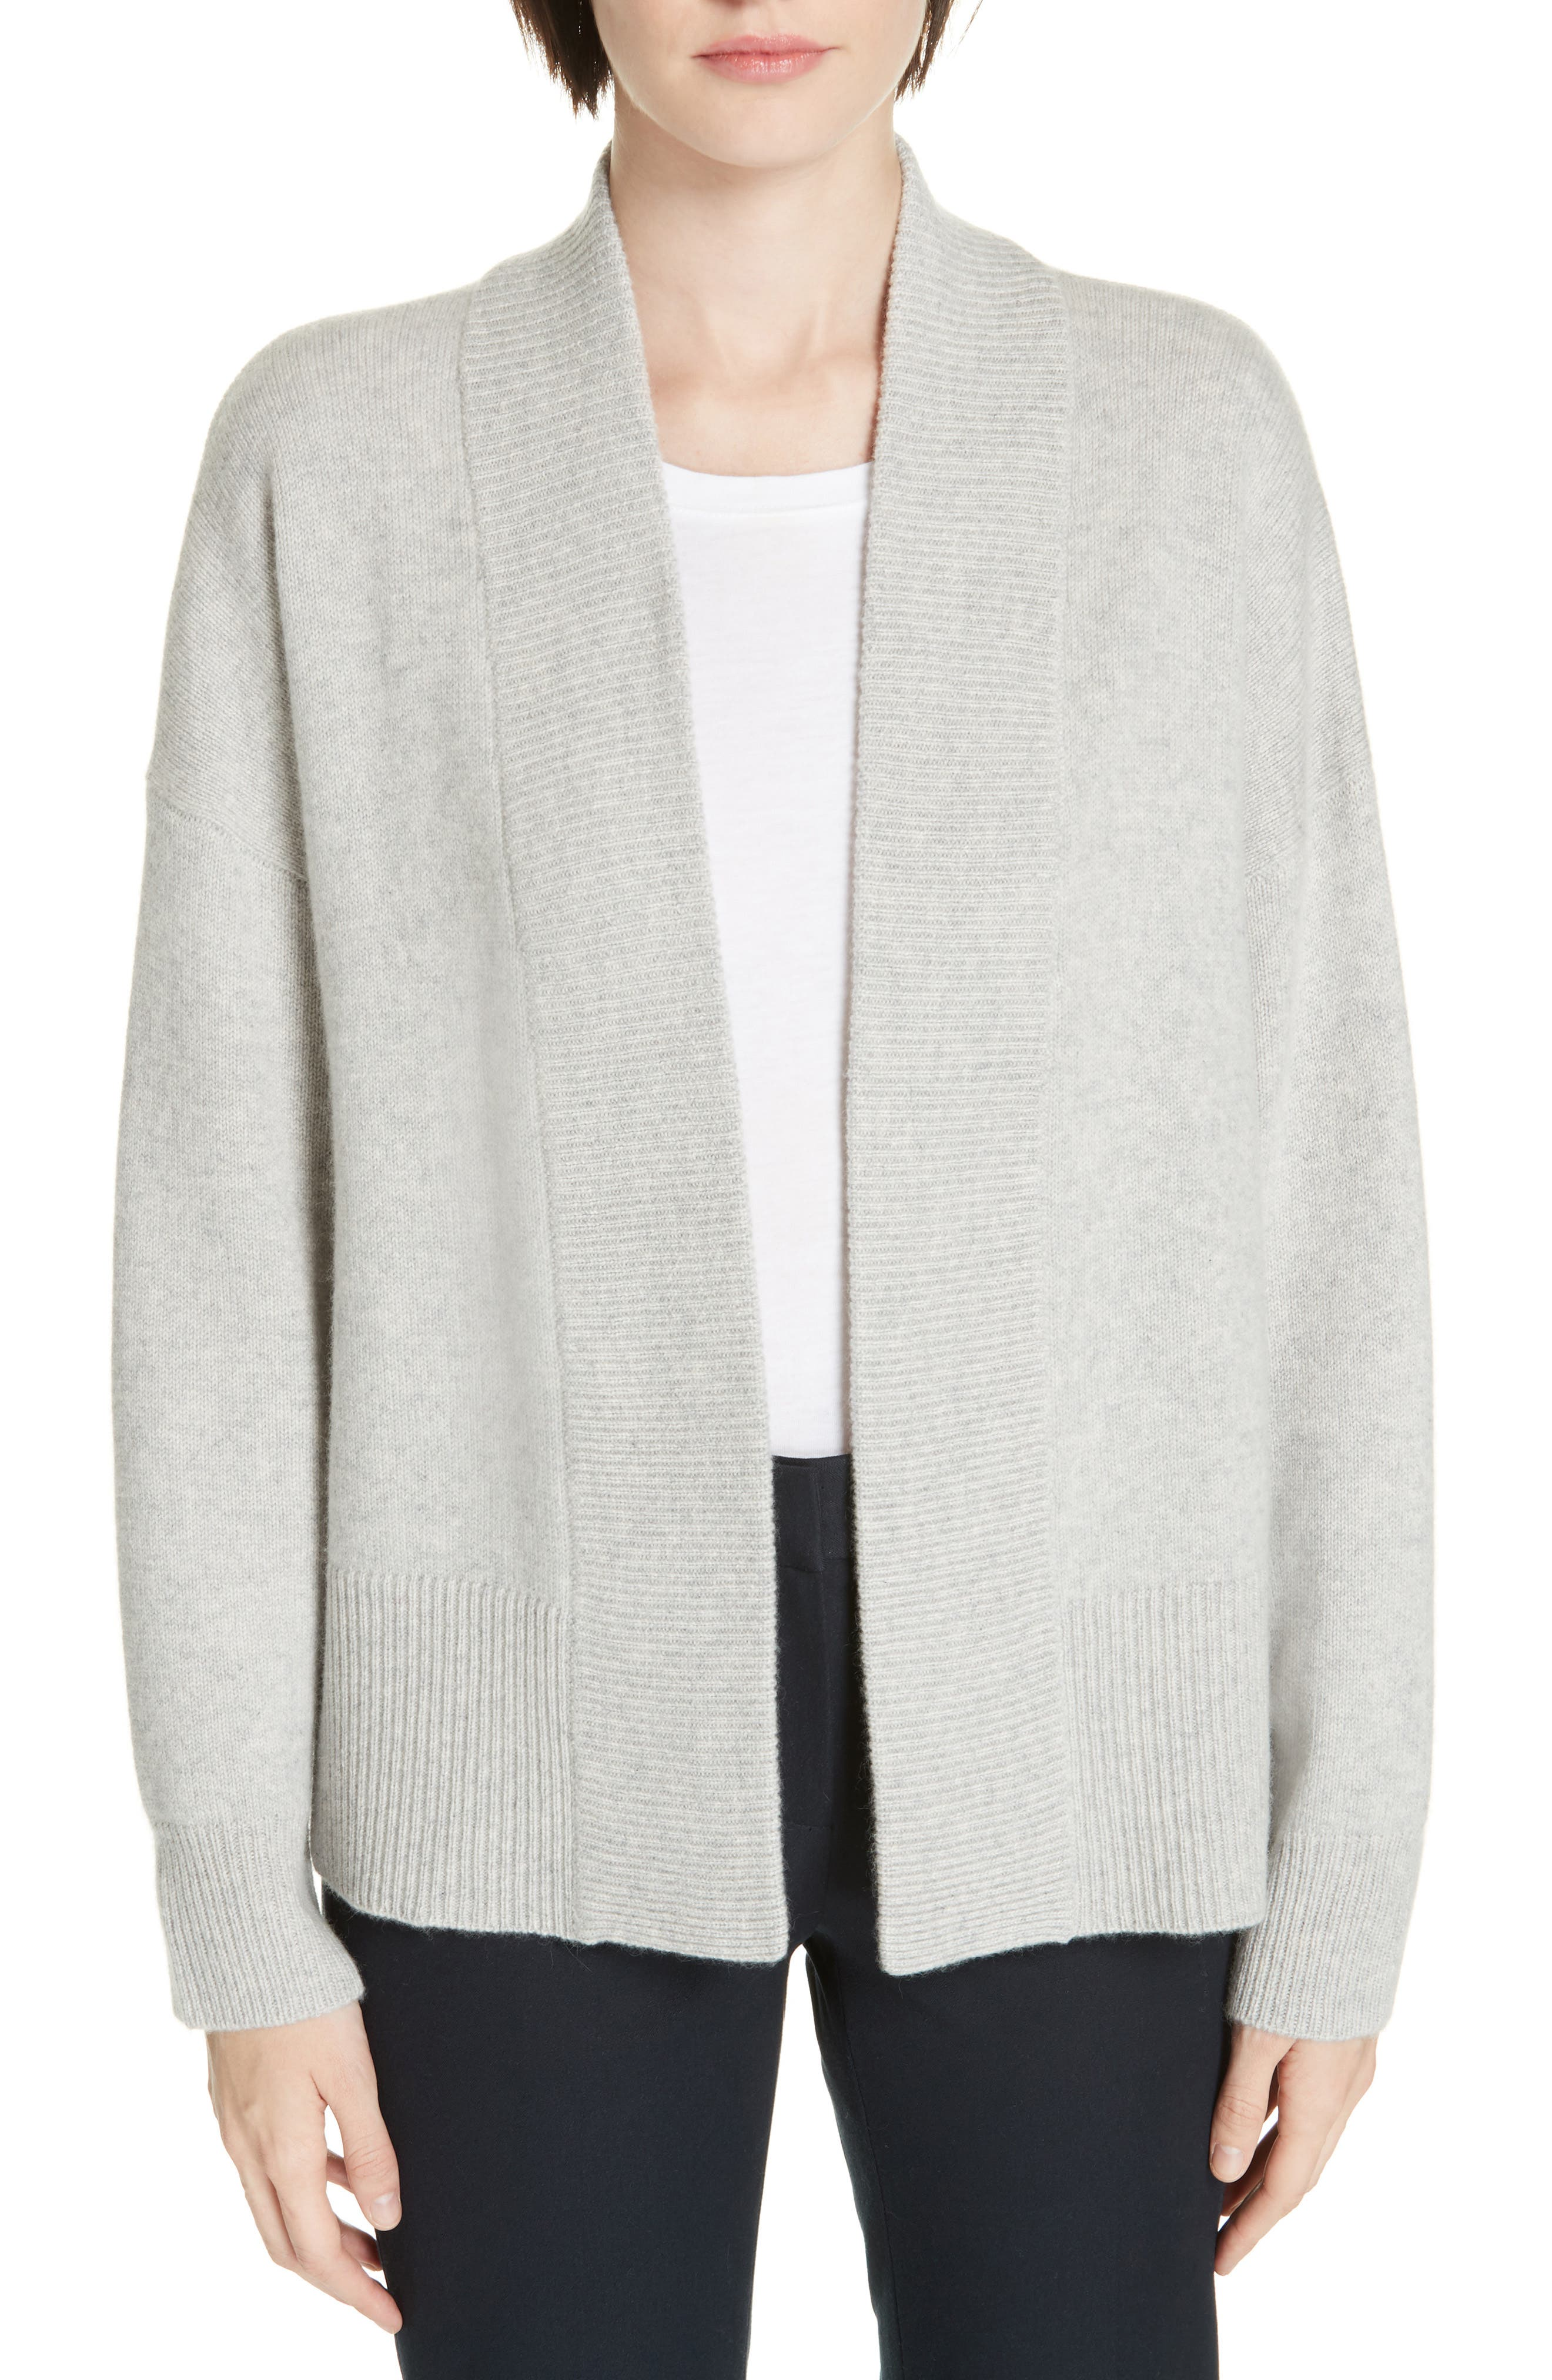 NORDSTROM SIGNATURE, Cashmere Blend Cardigan, Main thumbnail 1, color, GREY CLAY HEATHER